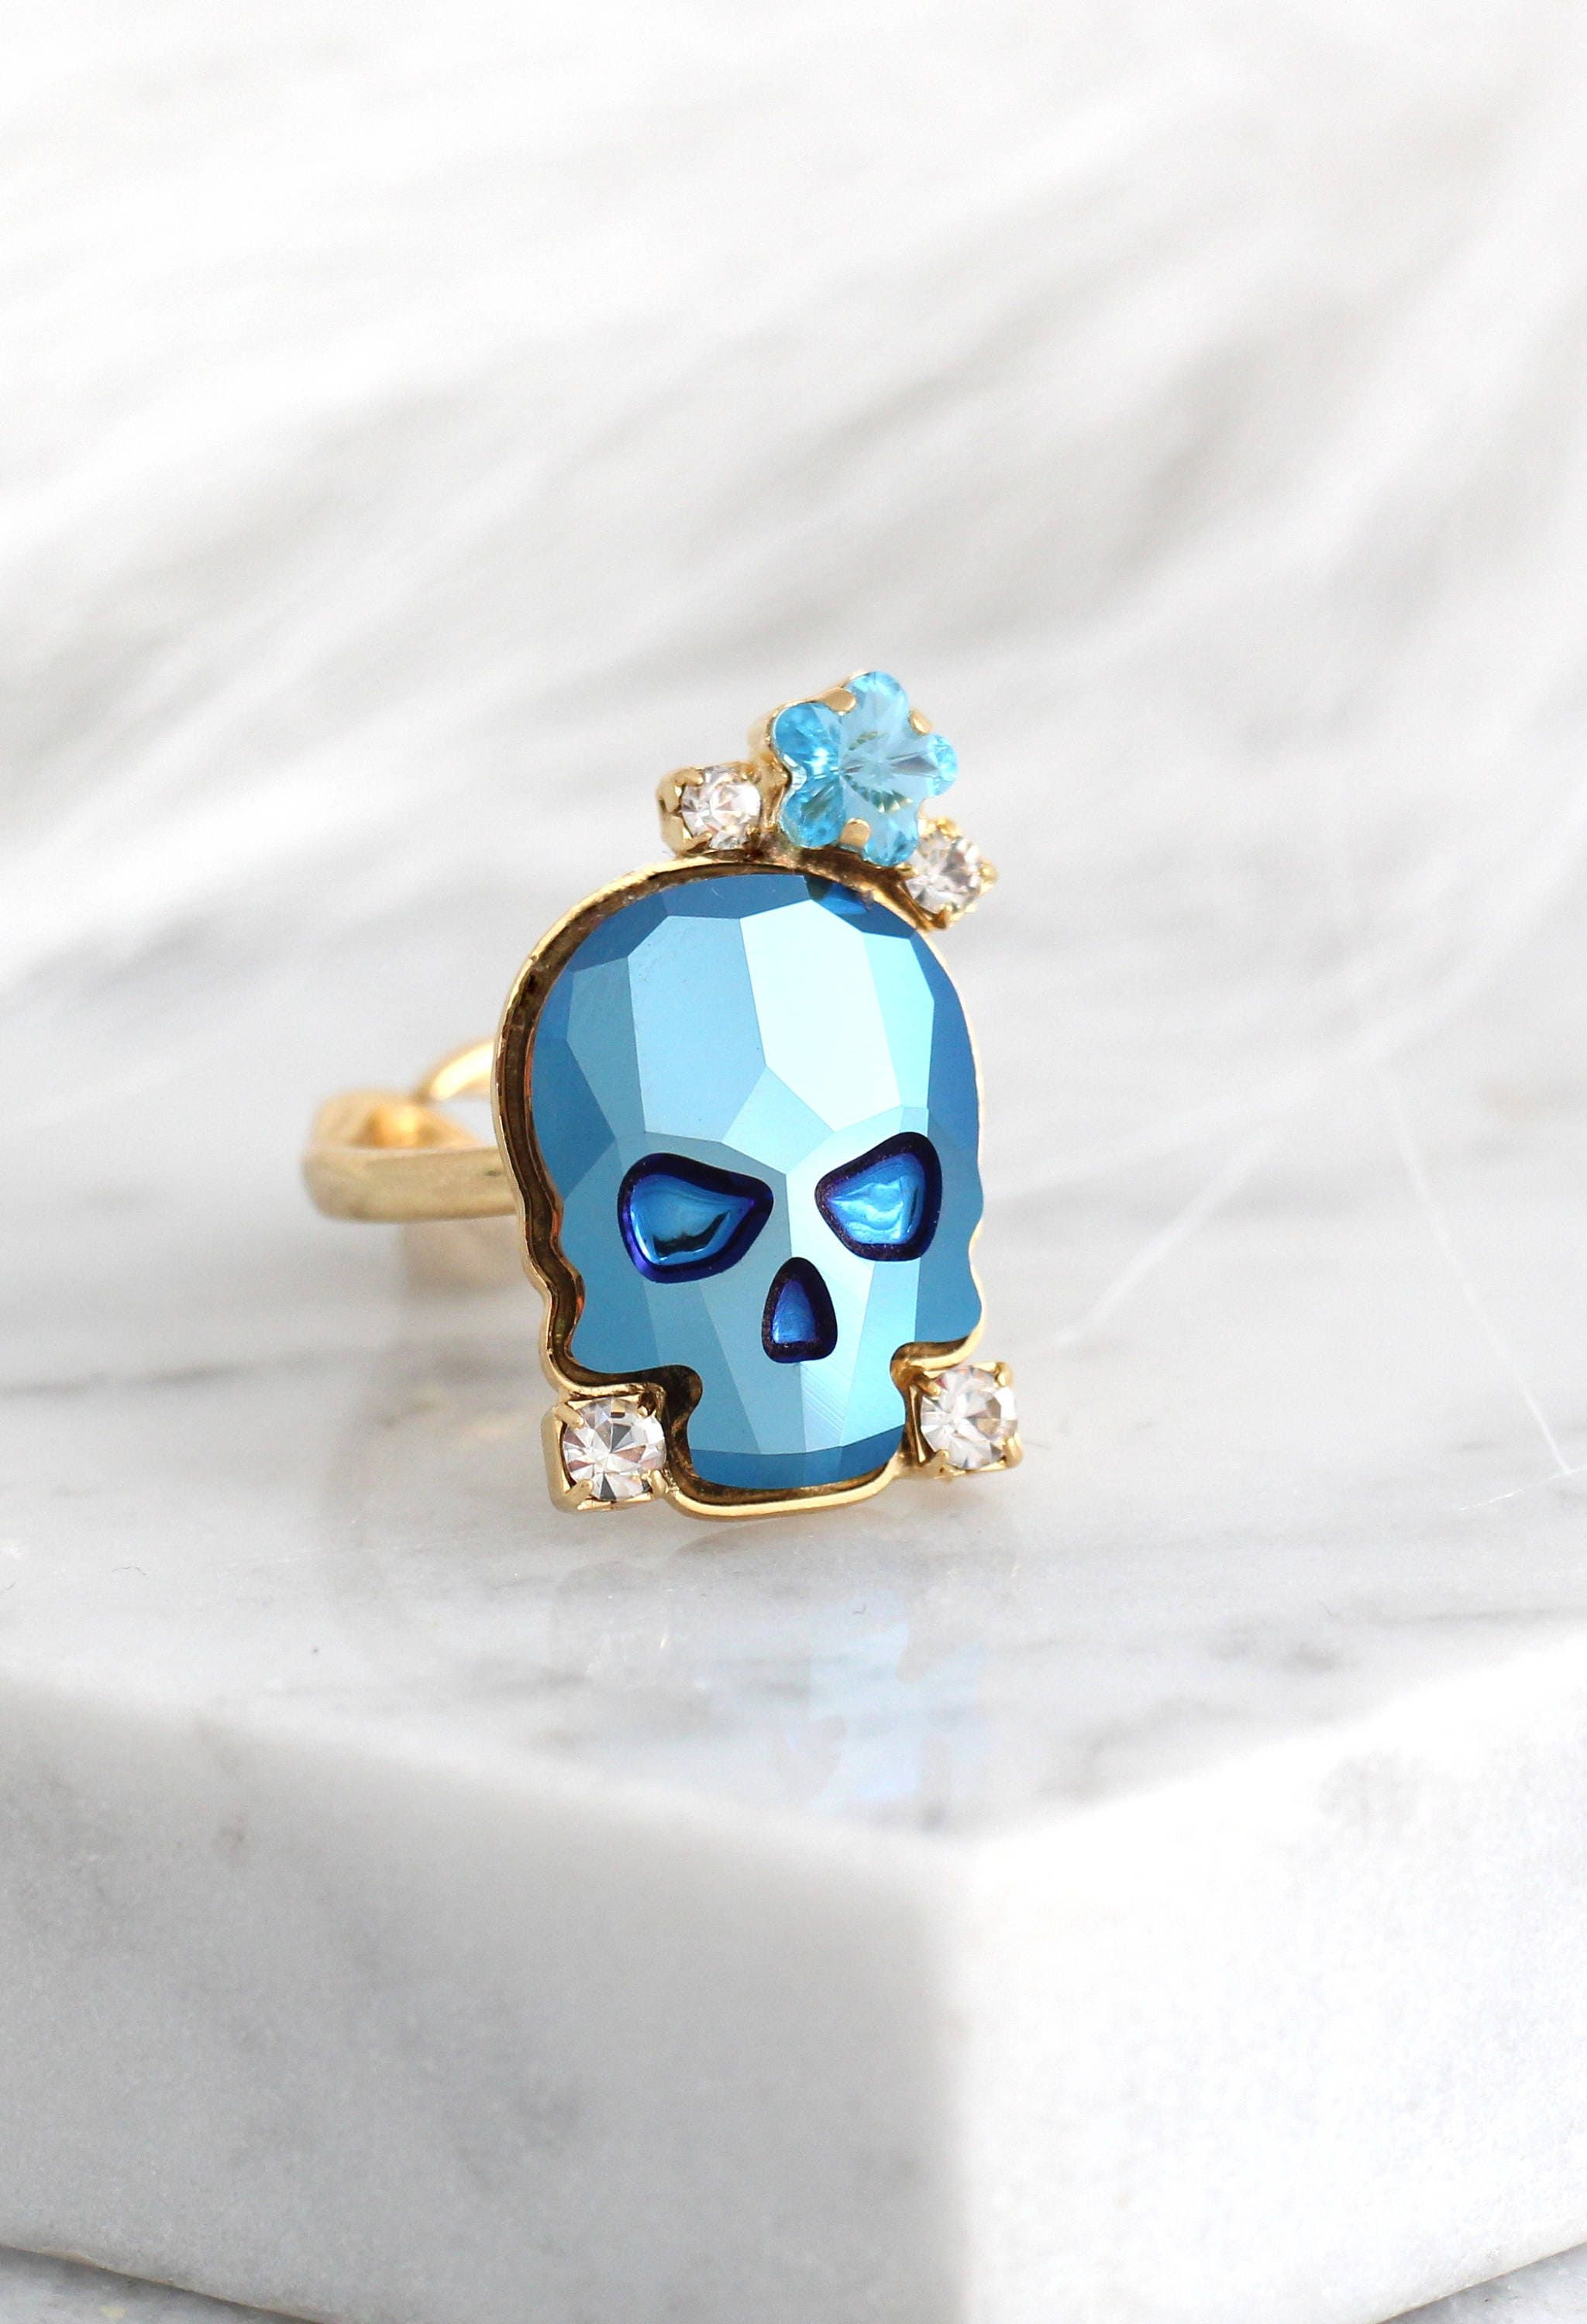 """""""Skull Ring, Sugar Skull Ring, Cocktail Ring, Gothic Ring, Boho Chic Ring, Blue Ring, Adjustable Skull Crystal Ring, Gift For Woman. ♥IF YOU WANT THE BEST CHOSE THE ORIGINAL ♥ Top Quality Materials ♥ Excellent Customer Service ♥ Handcrafted with genuine crystals ♥ IF YOU WANT THE BEST CHOSE THE ORIGINAL Arrives in our signature Petite Delights by Ilona Rubin® Box. Sent By Registered Insured mail. Details : ♥ U.S packages shipped via USPS® insured+USPS® tracking number ♥ Handcrafted with genuine"""